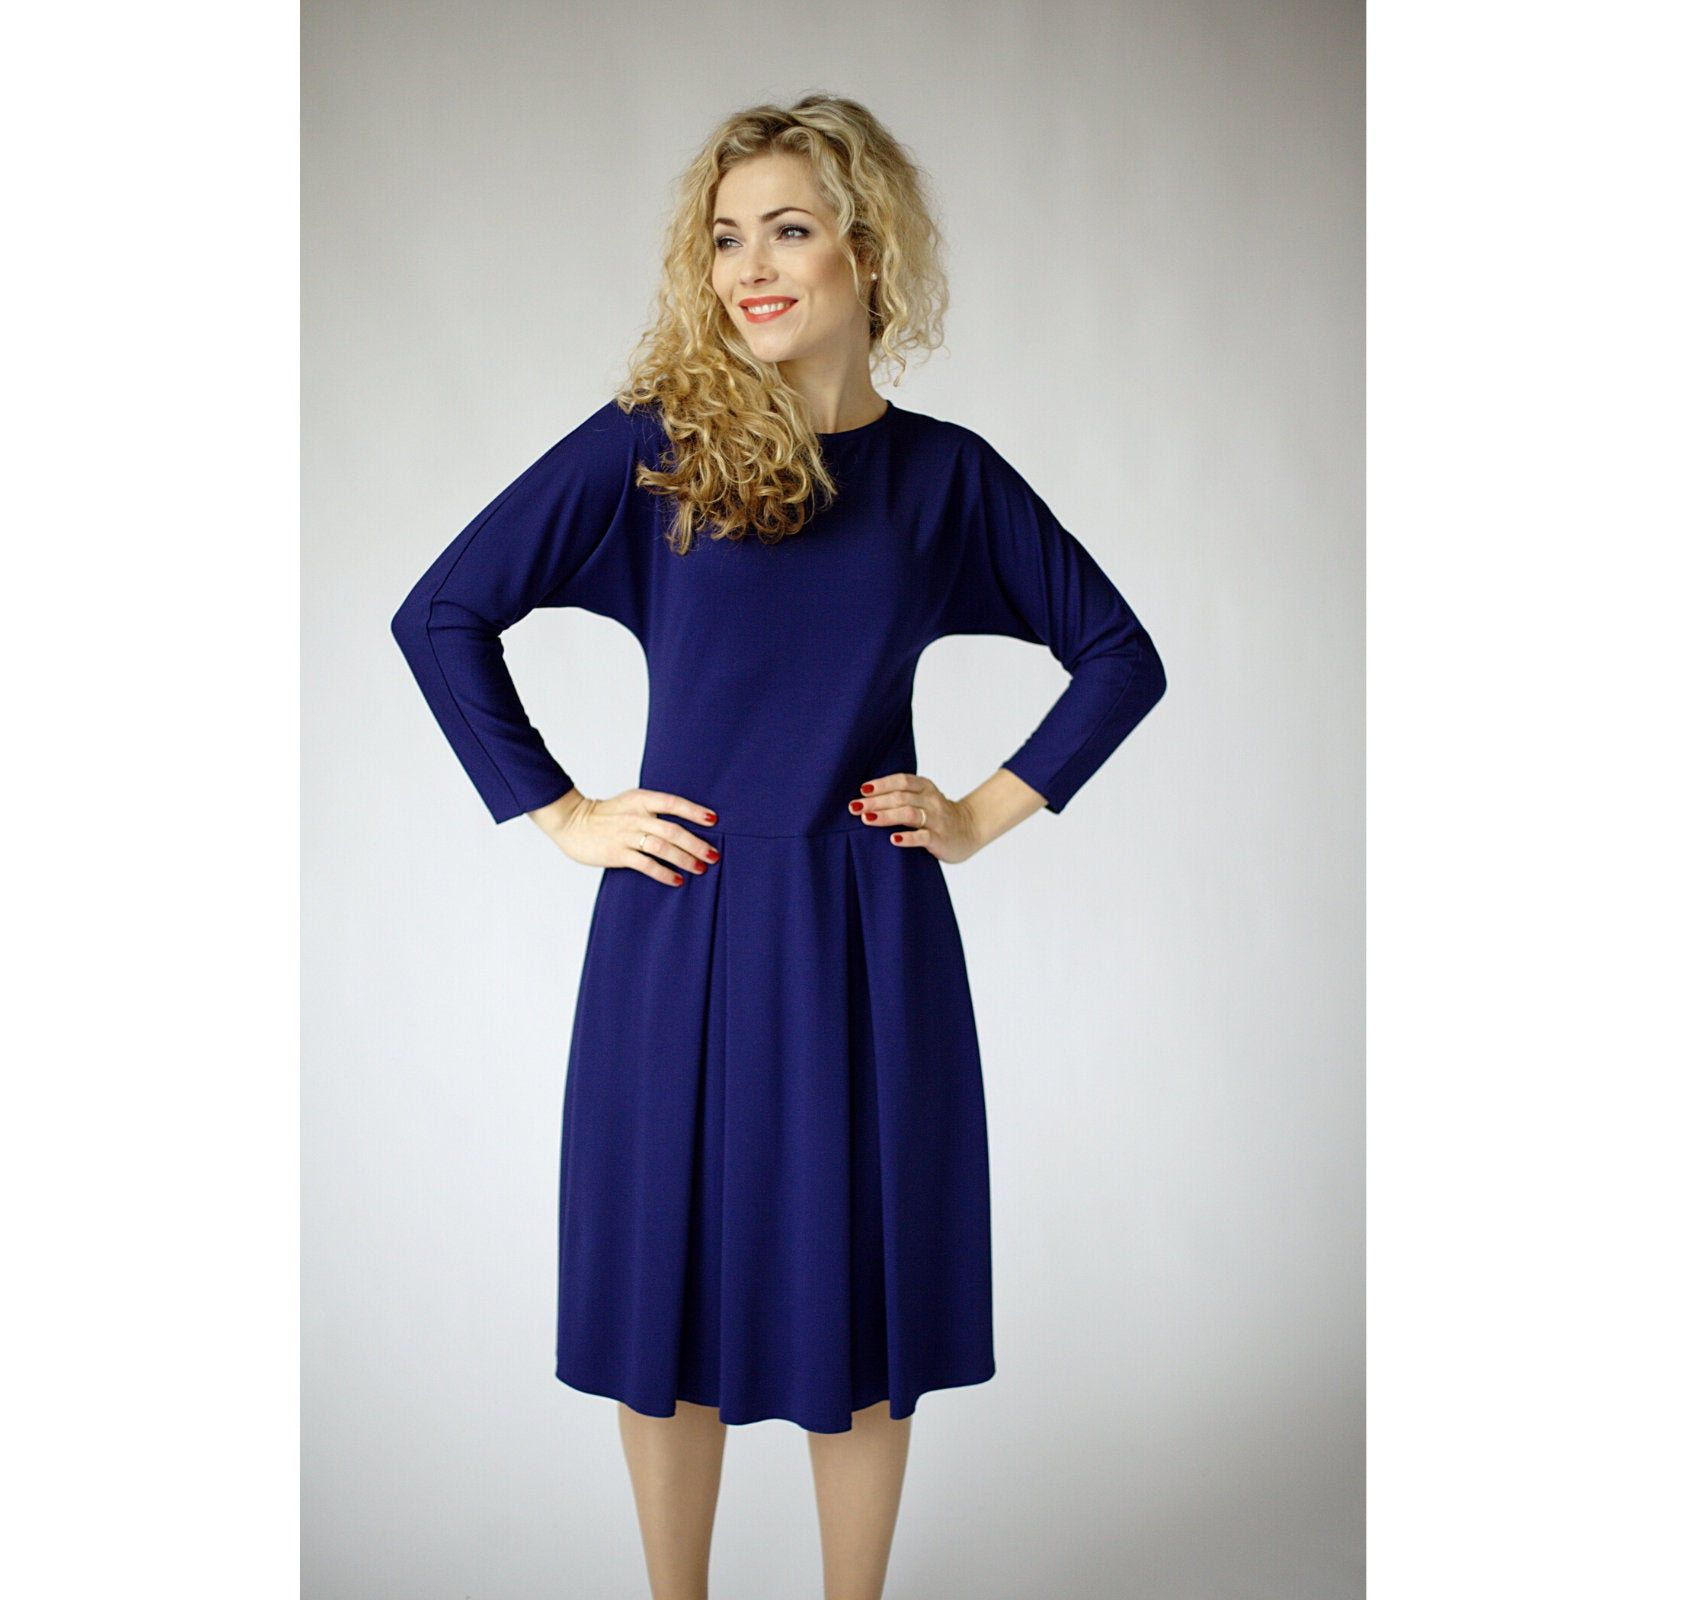 Navy Blue Long Sleeve Dress With Pockets And Folded Bottom Casual Dresses For Wome Blue Long Sleeve Dress Casual Dresses For Women Navy Blue Long Sleeve Dress [ 1600 x 1682 Pixel ]